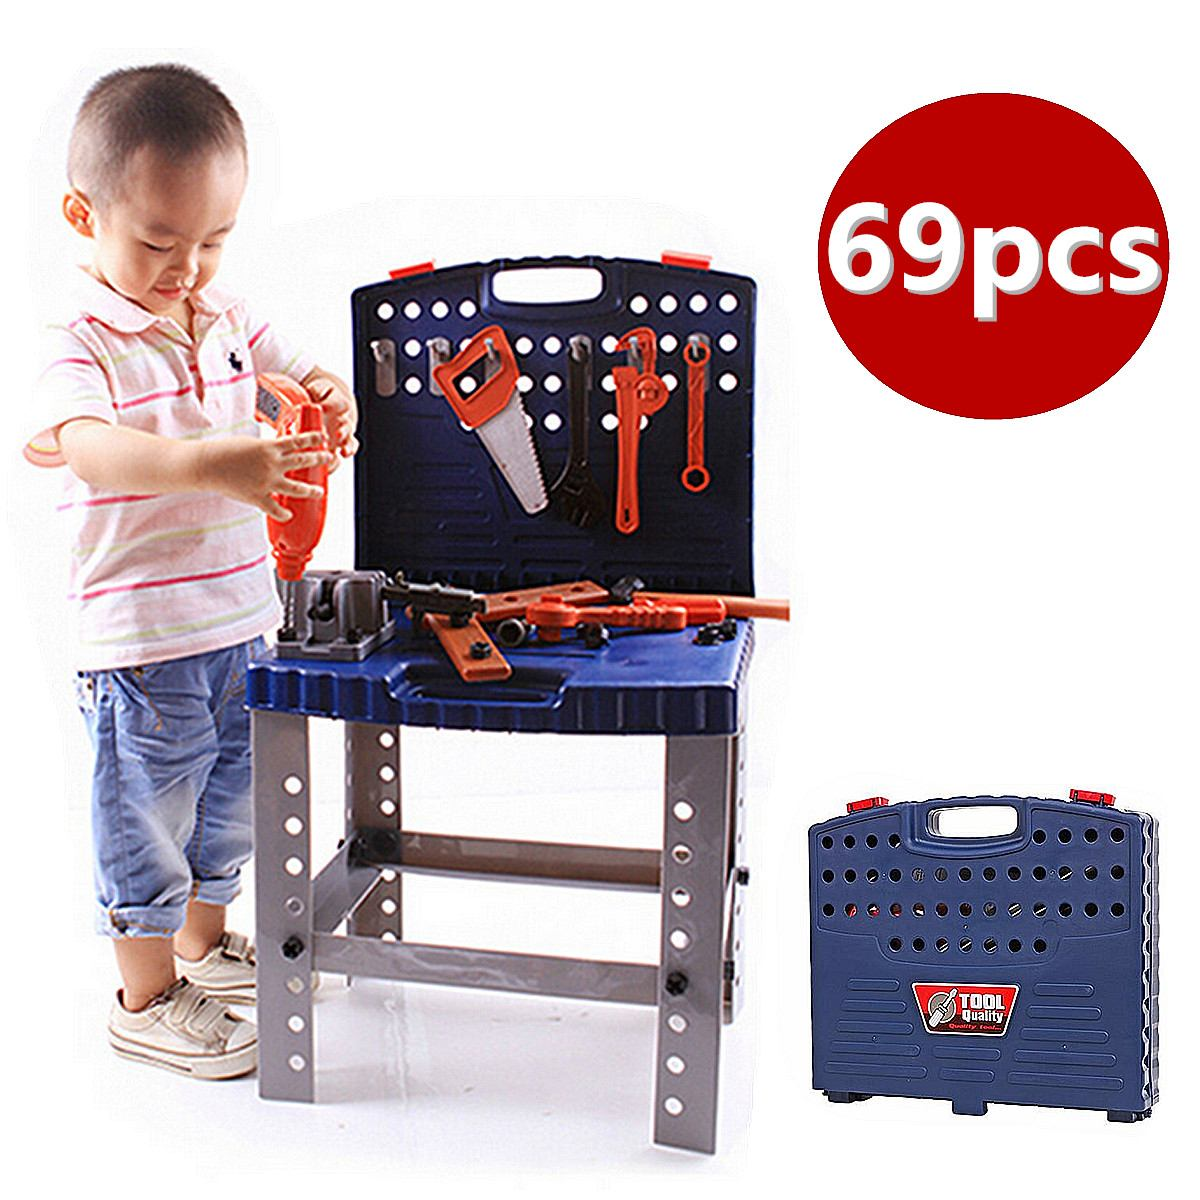 iBaseToy 91pcs Eco-friendly Educational Safe Repair Tools for Boys Children